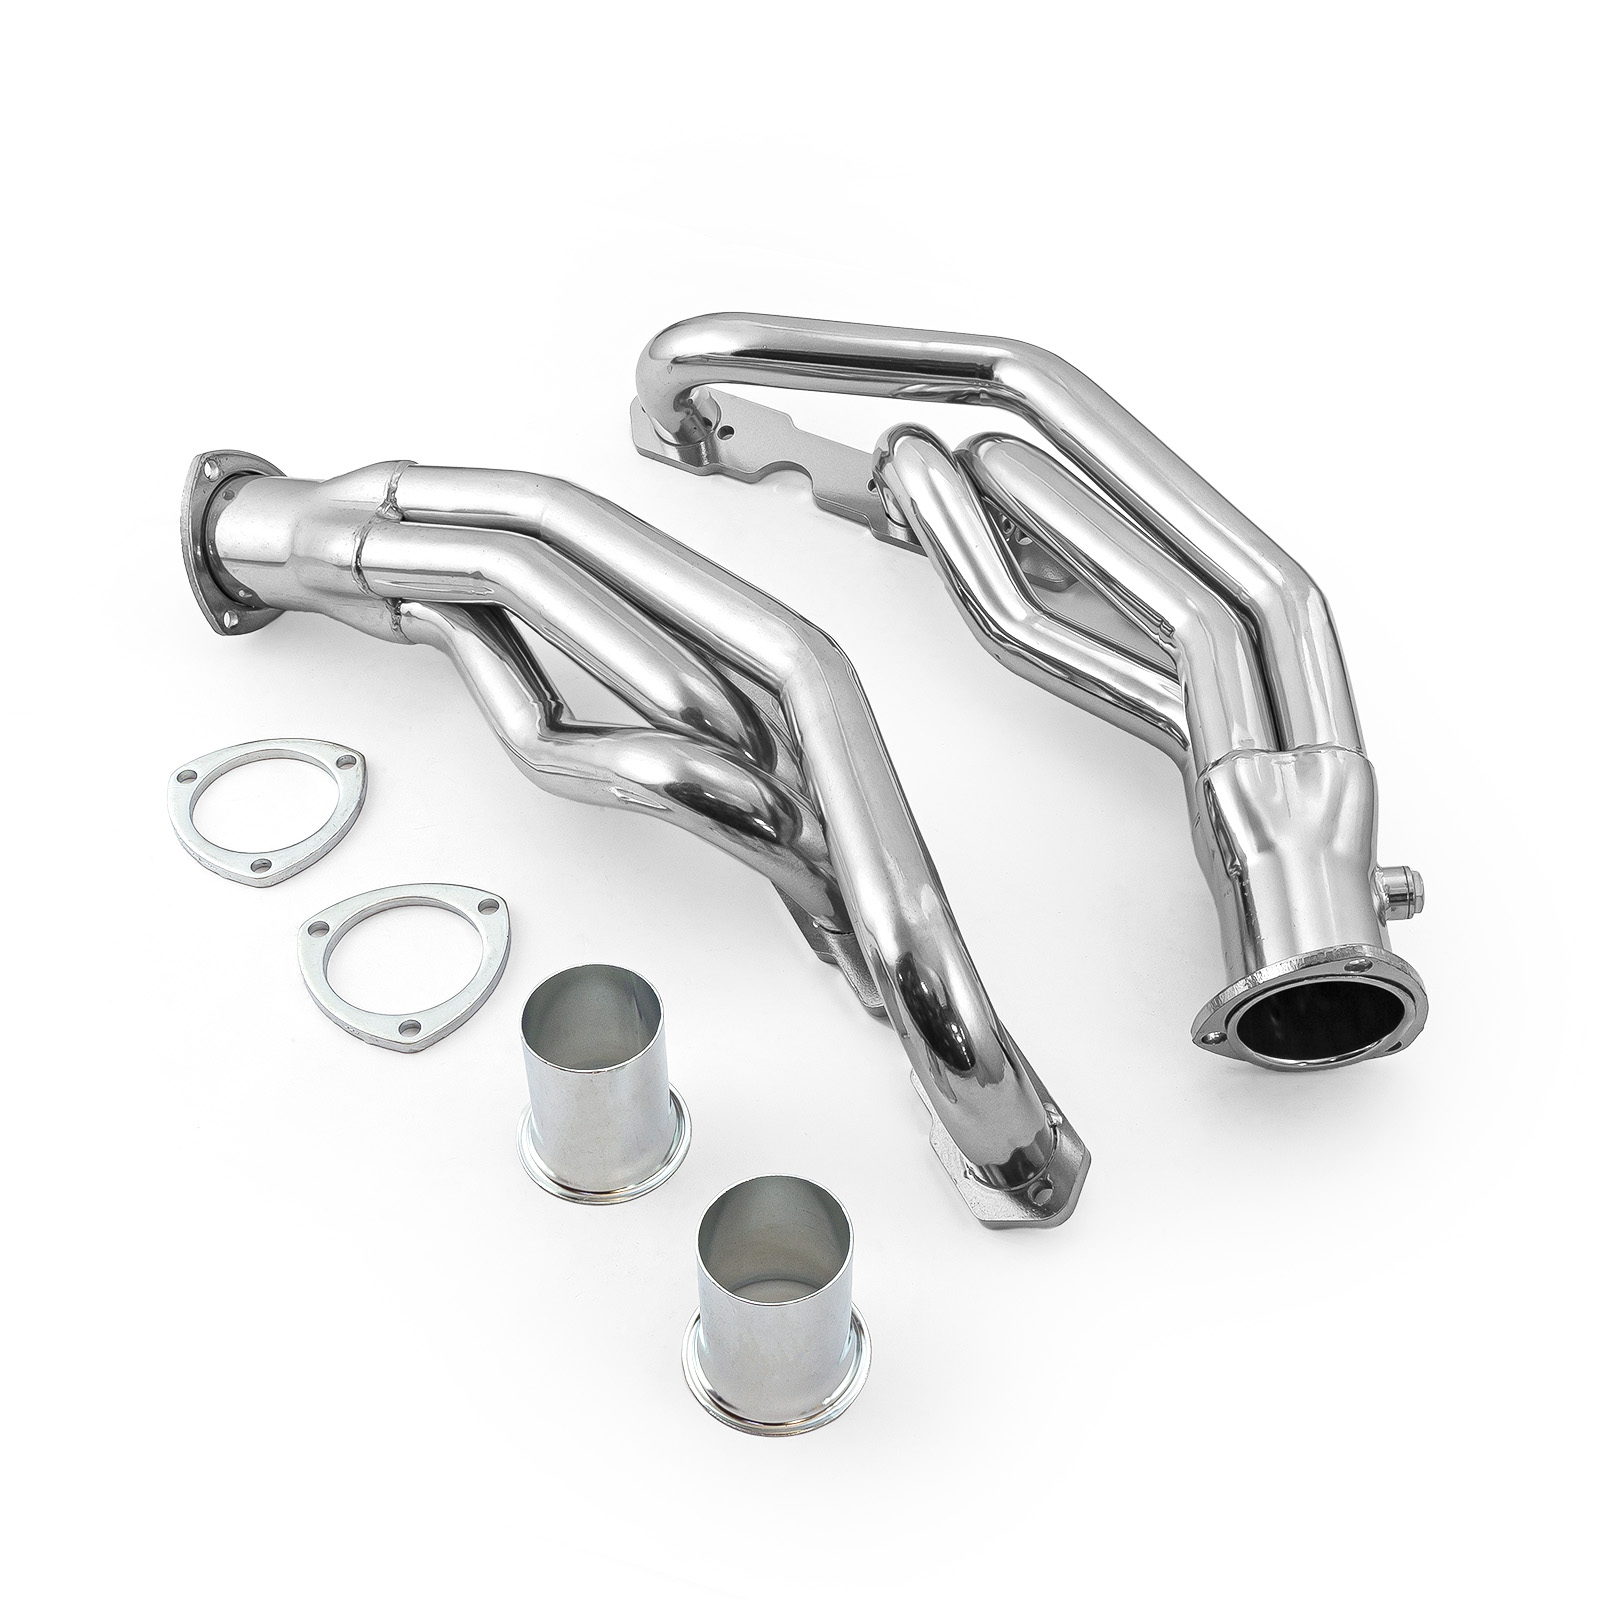 Chevy SBC 350 Pickup Truck 1988-95 Ceramic Coated Headers